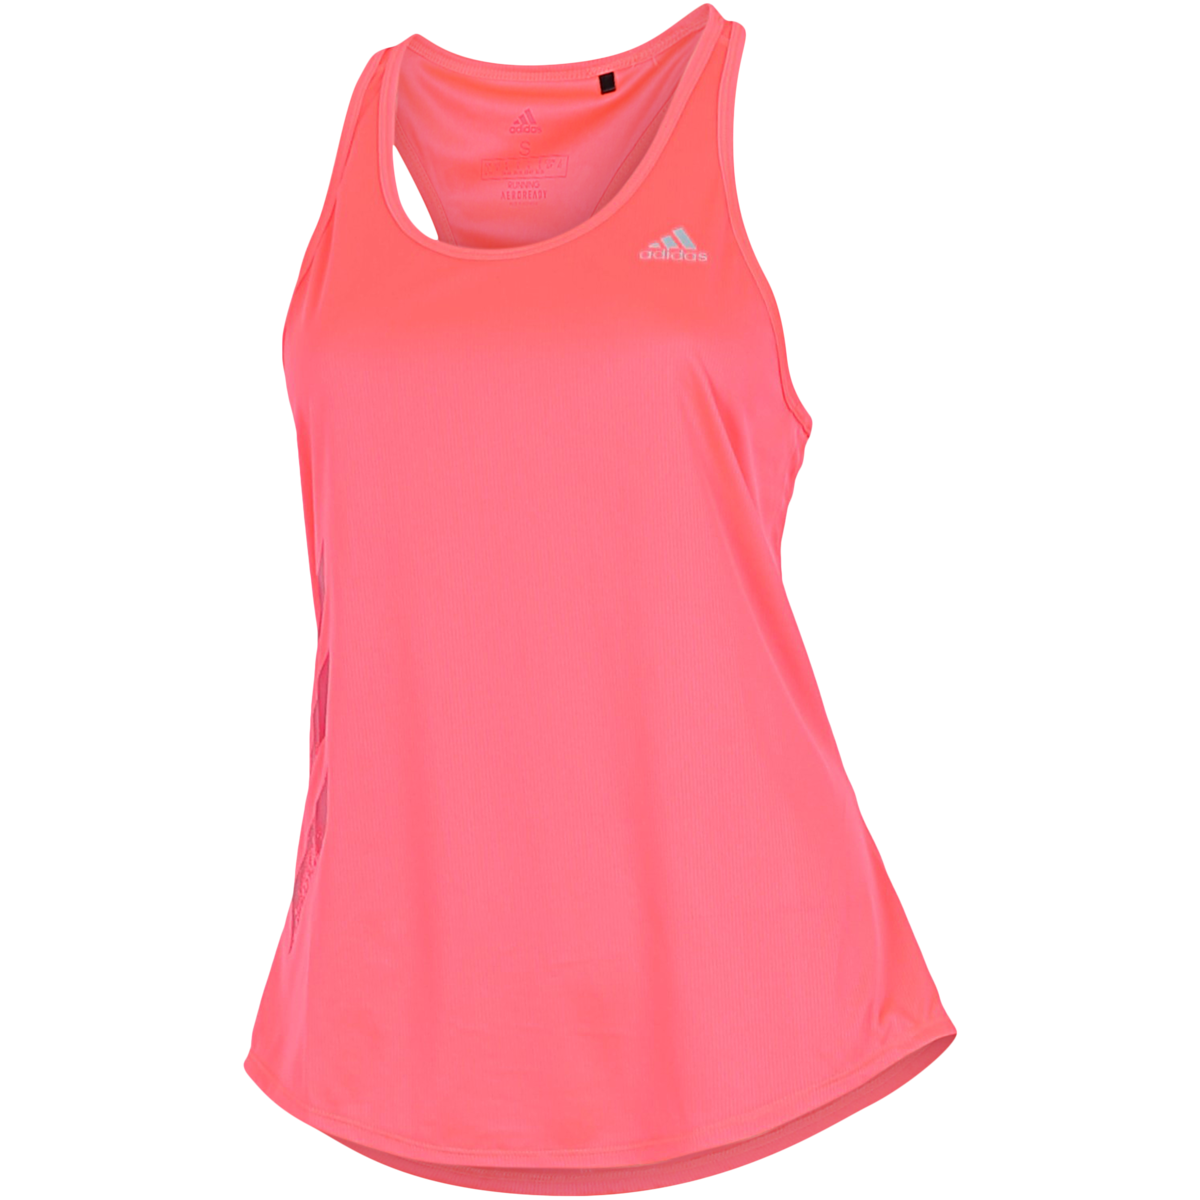 adidas - Own The Run 3-Stripes PB Tank Top - Pink